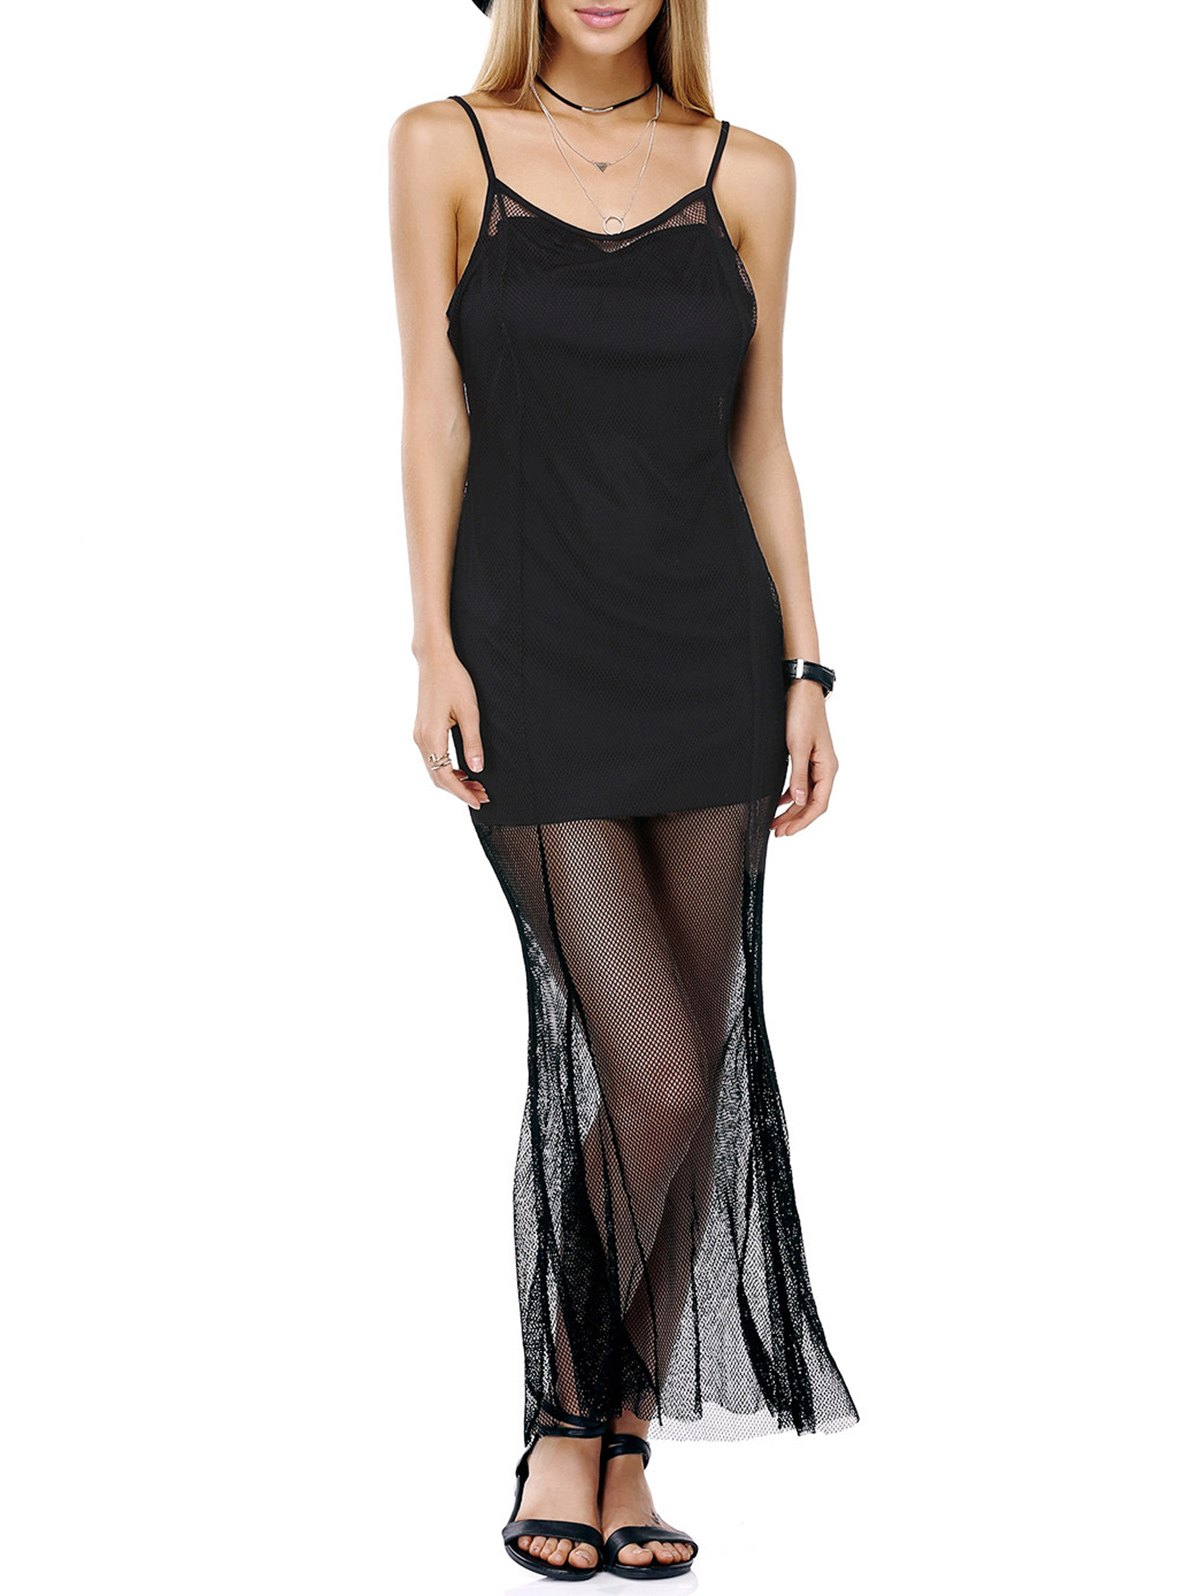 Attractive Spaghetti Straps Mesh See-Through Solid Color Dress For Women - BLACK XL